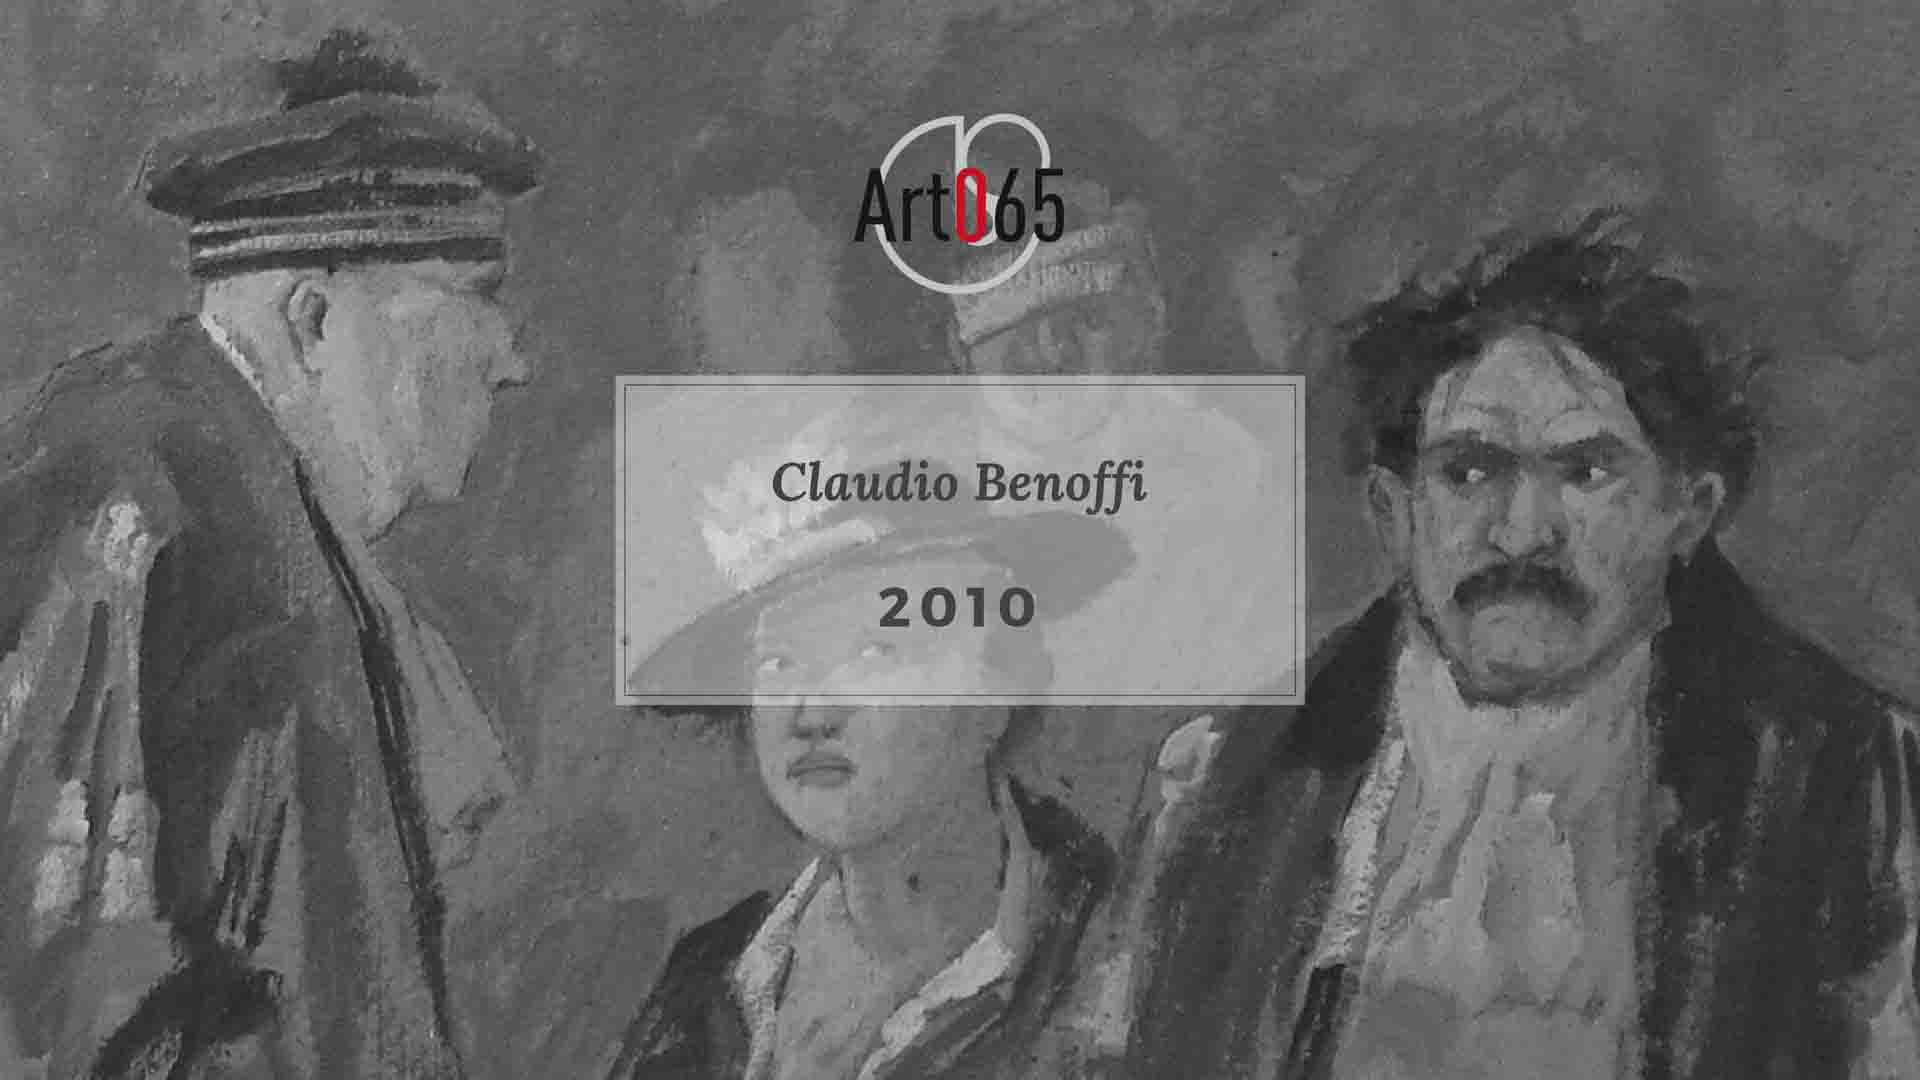 Claudio Benoffi - 2010 Art065